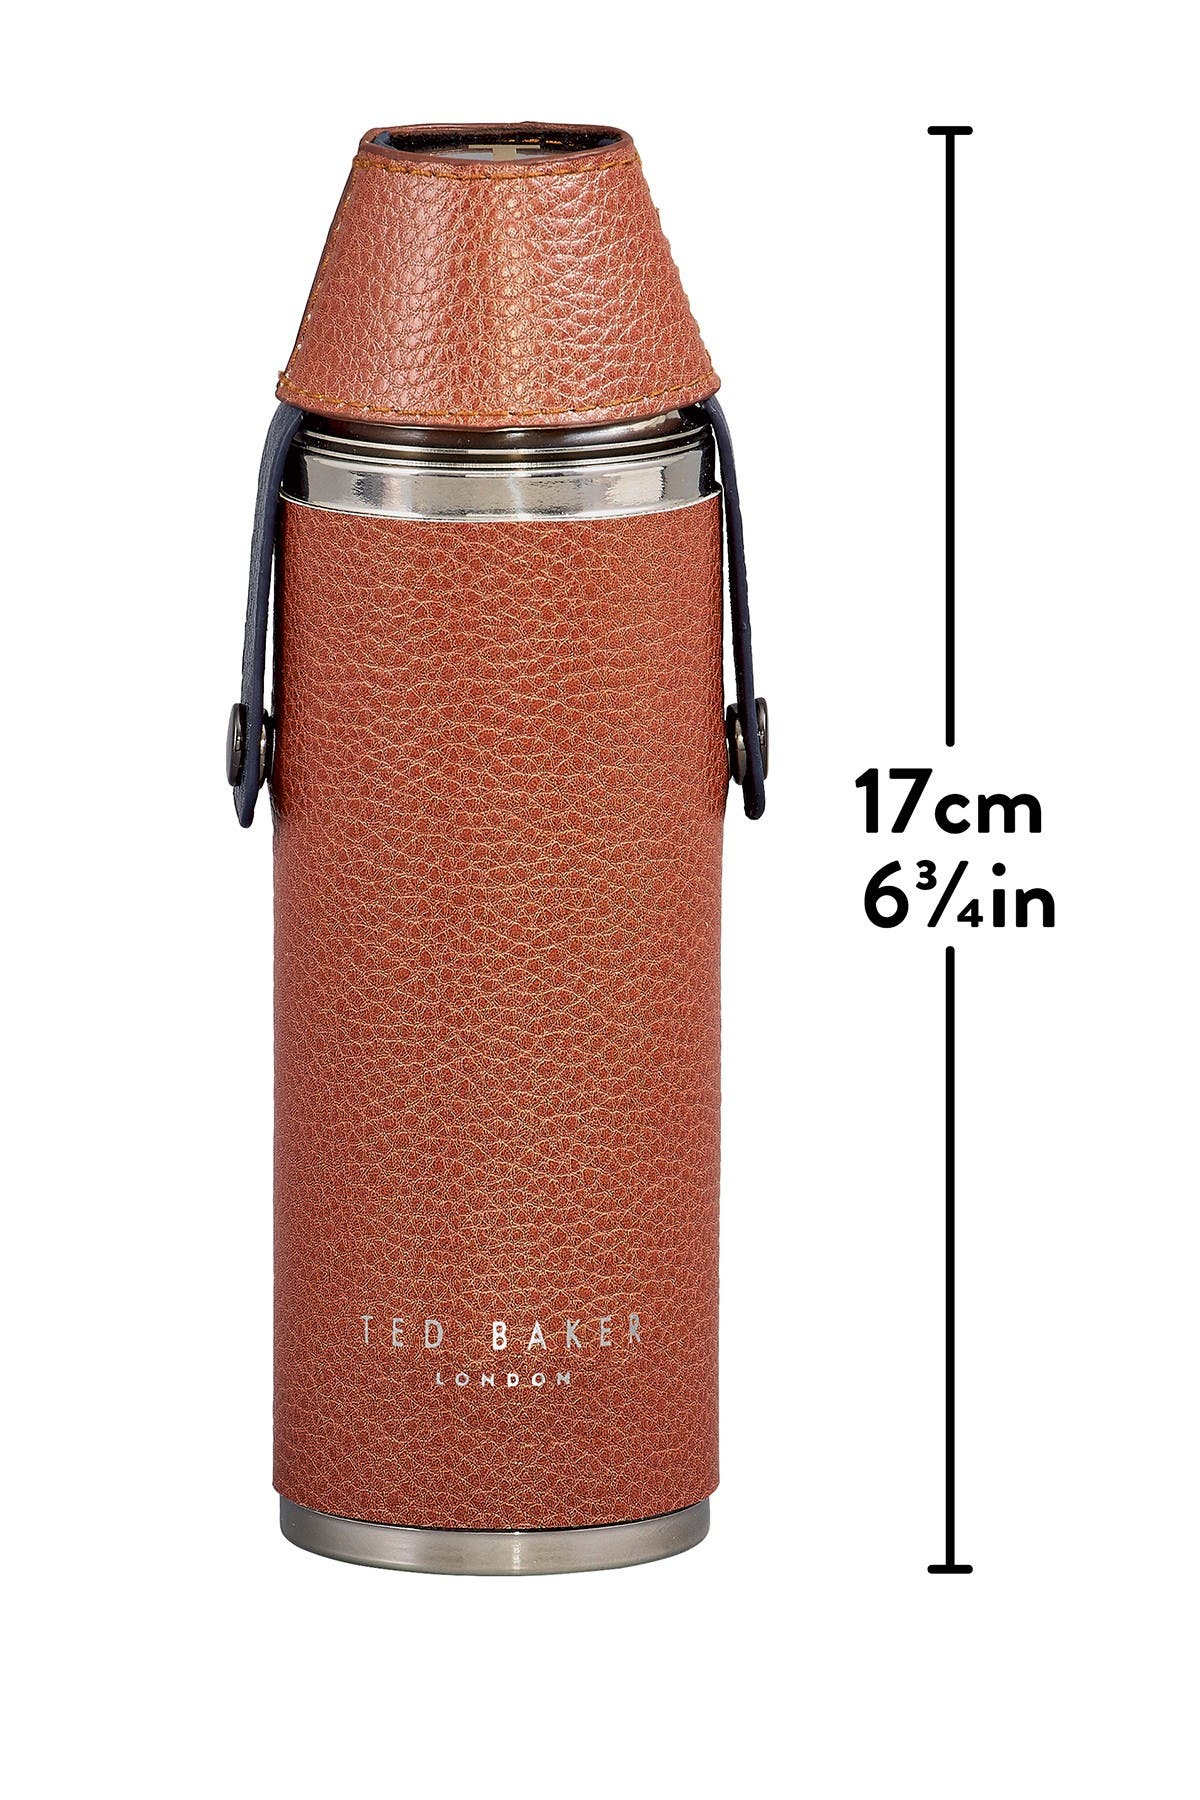 Image of Ted Baker London Brown Ted's World Hip Flask and Shot Cups